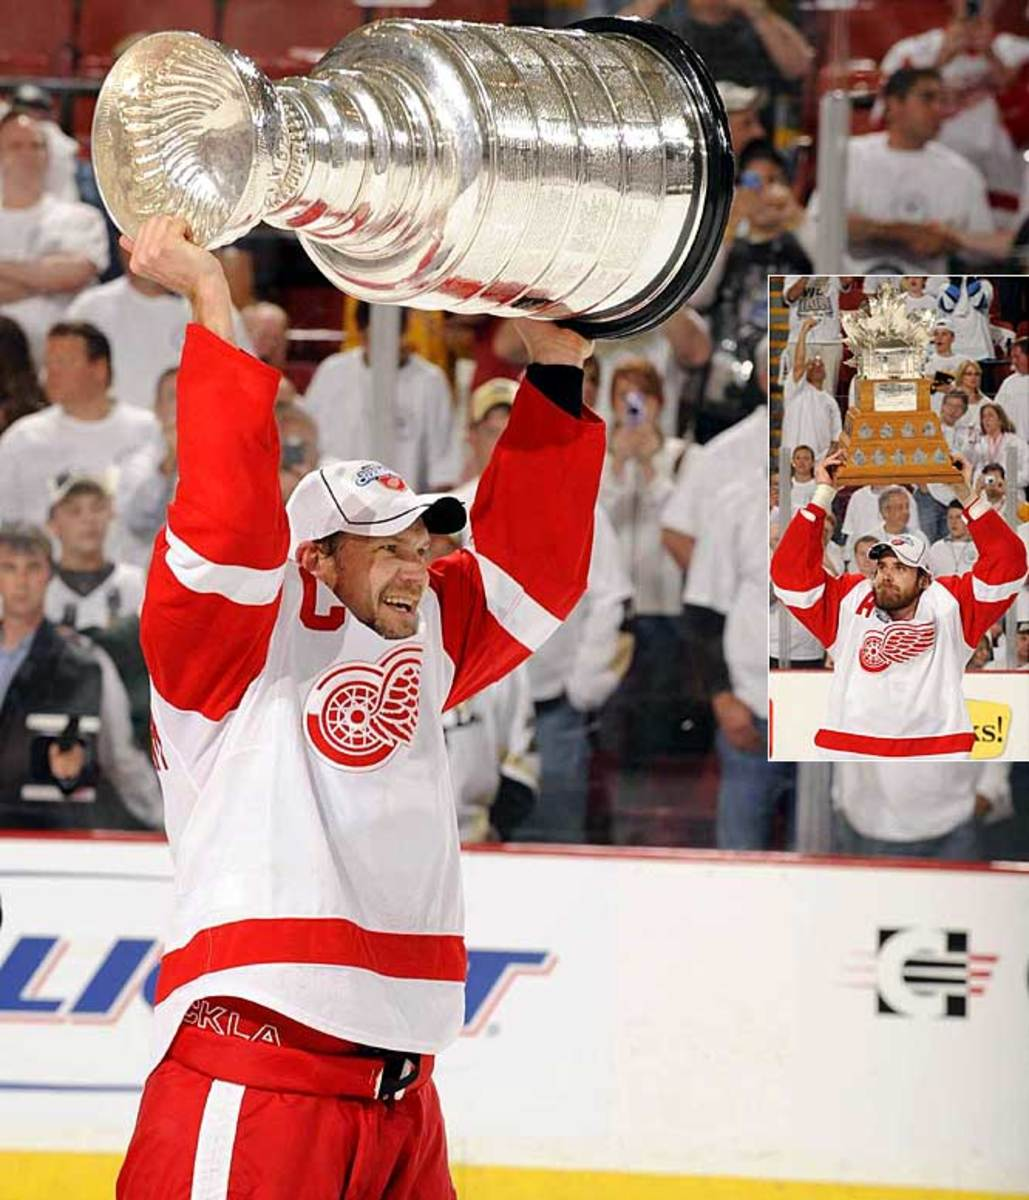 Nicklas Lidstrom hoists the Cup